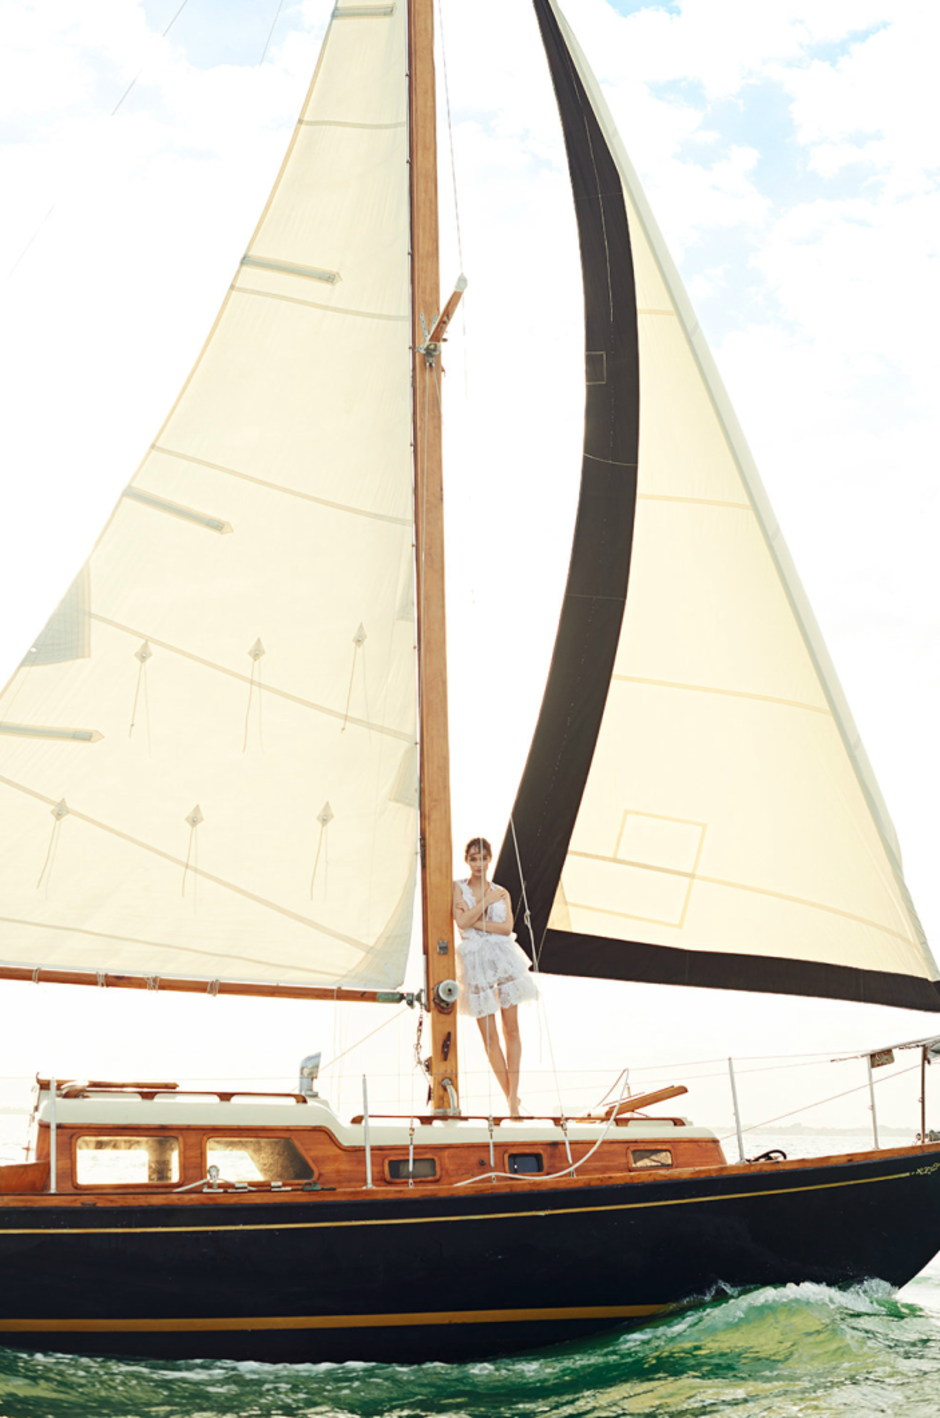 MODEL LUMA GROTHE SAILING IN MEXICO 6